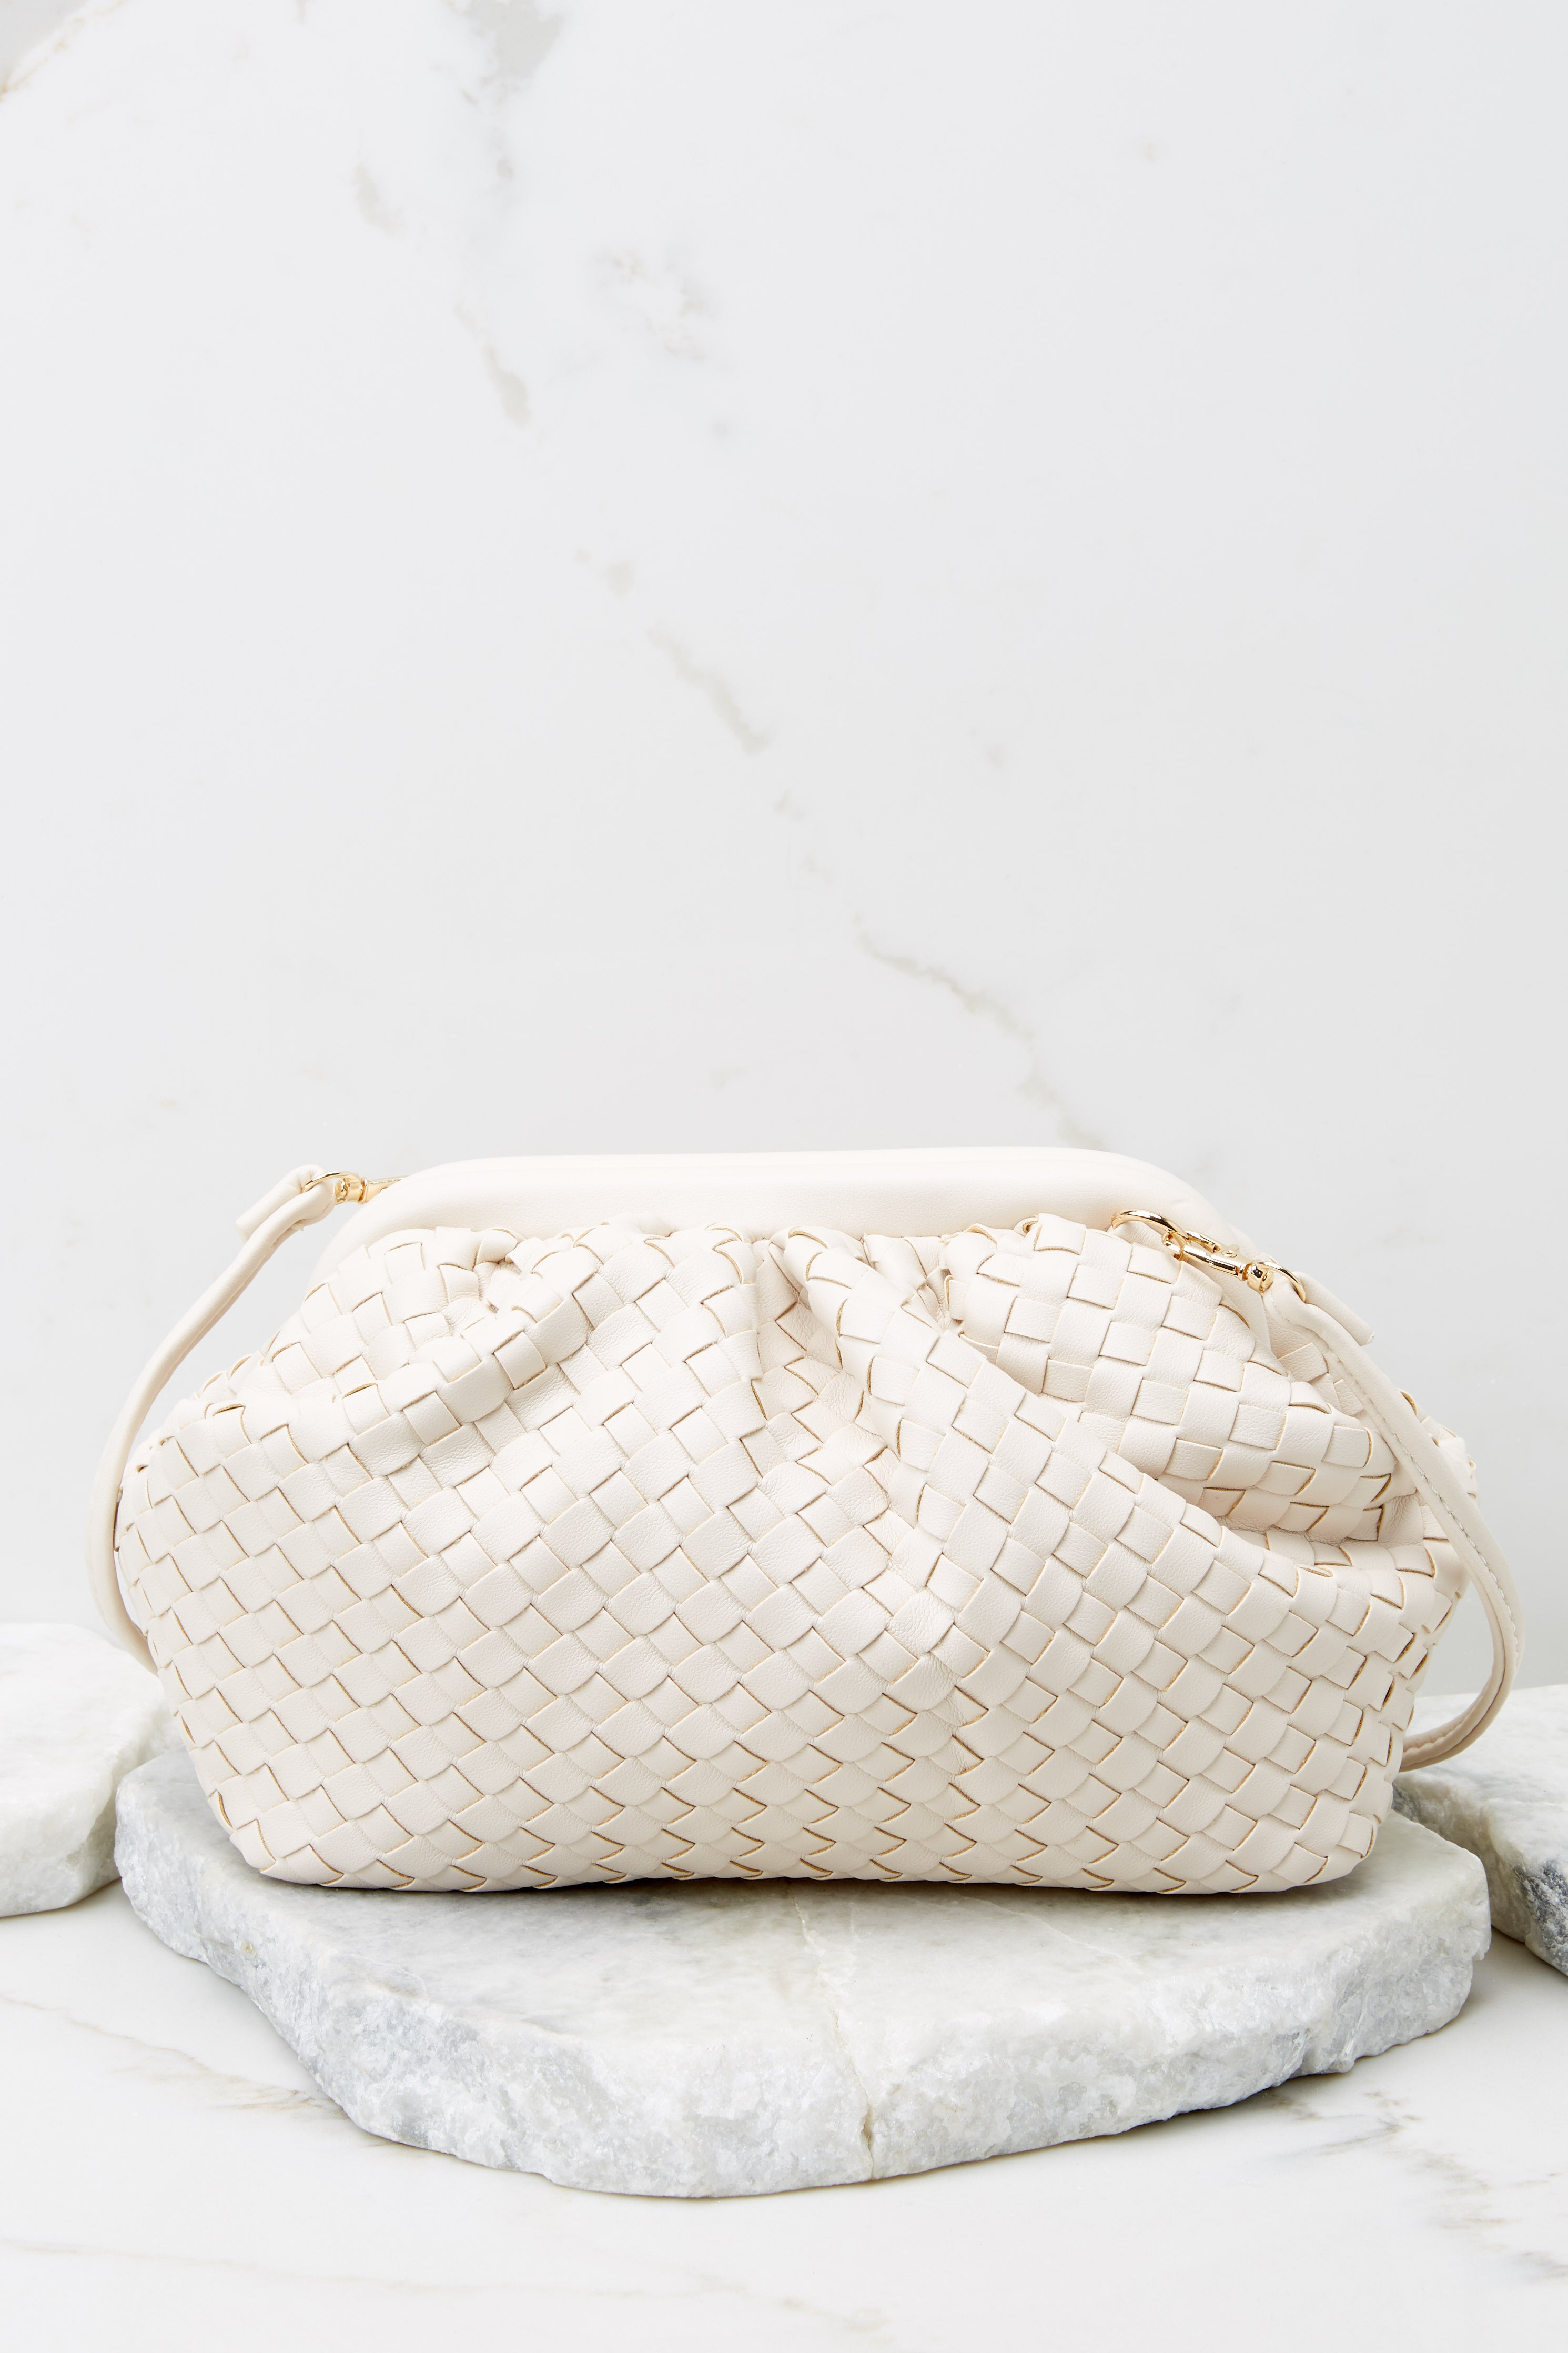 4 Why Of Course Ivory Bag at reddress.com